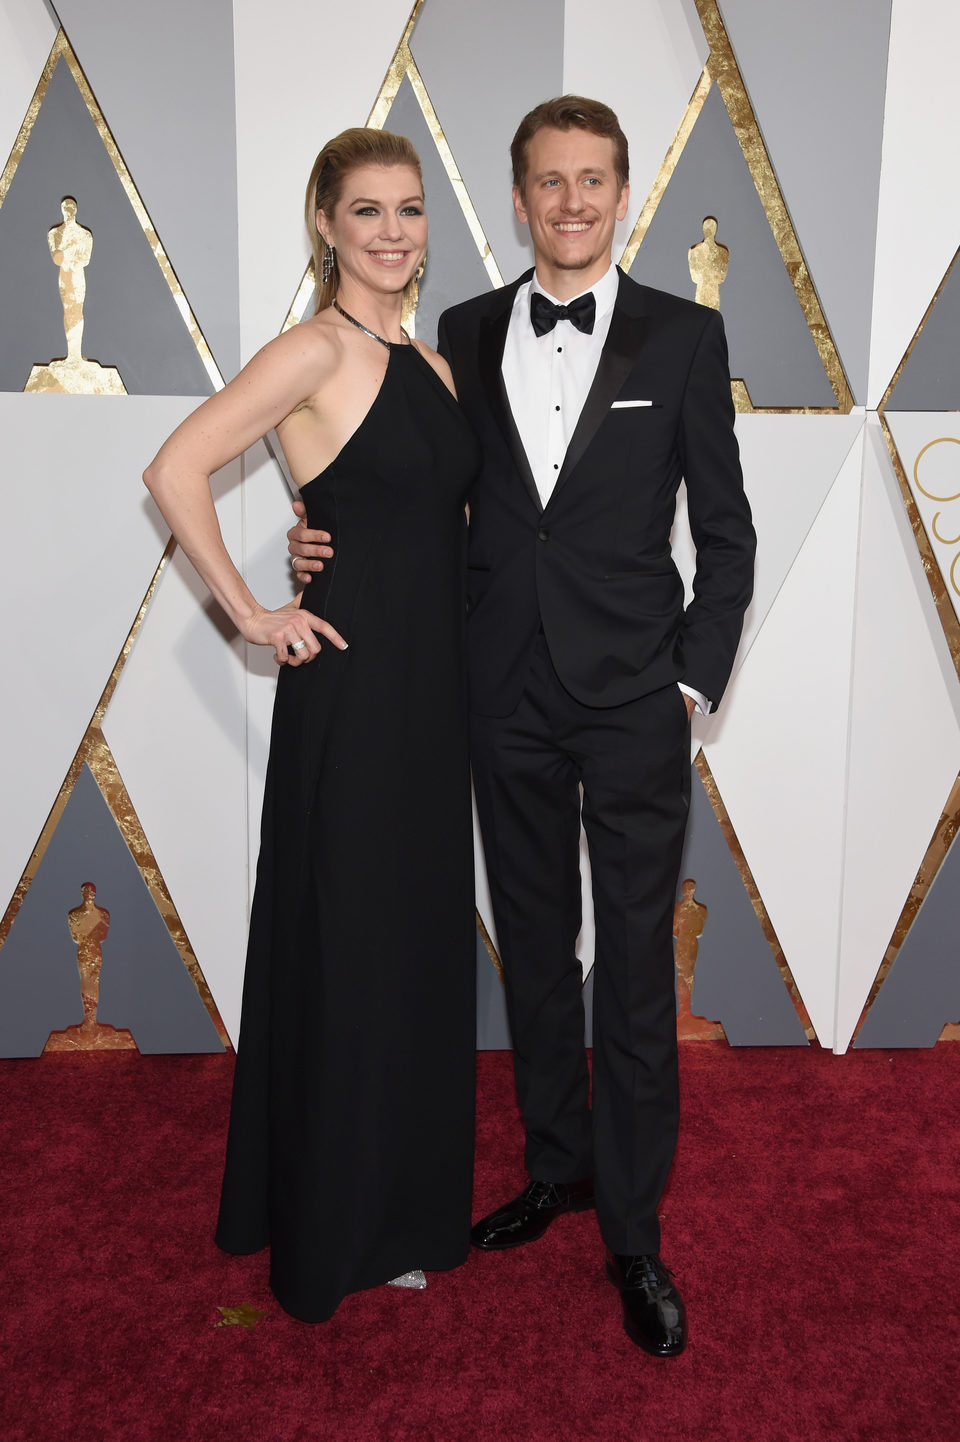 Courtney Marsh y Jerry Franck en la alfombra roja de los Oscar 2016